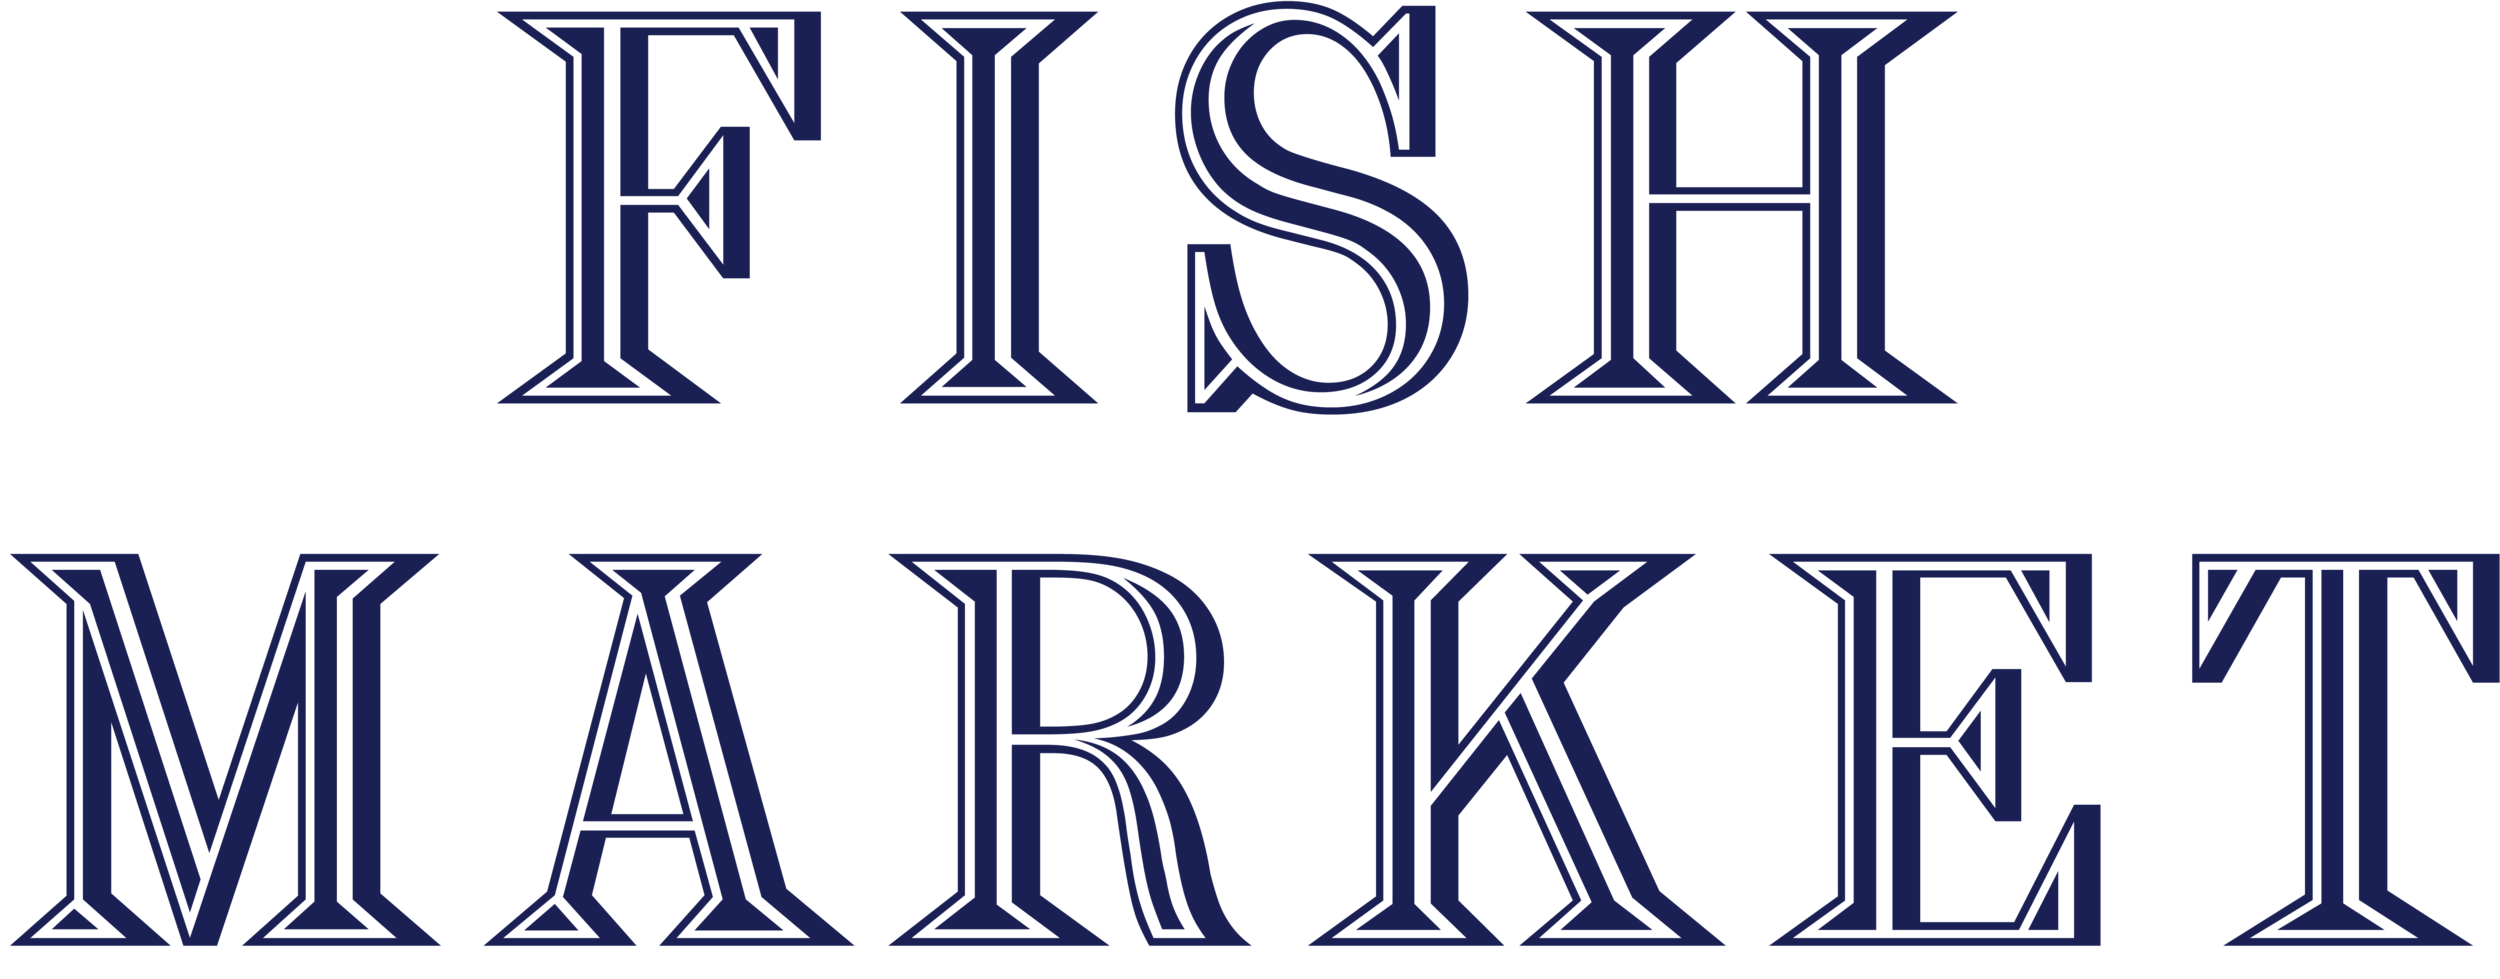 Fishmarket_logo_stacked-01.png